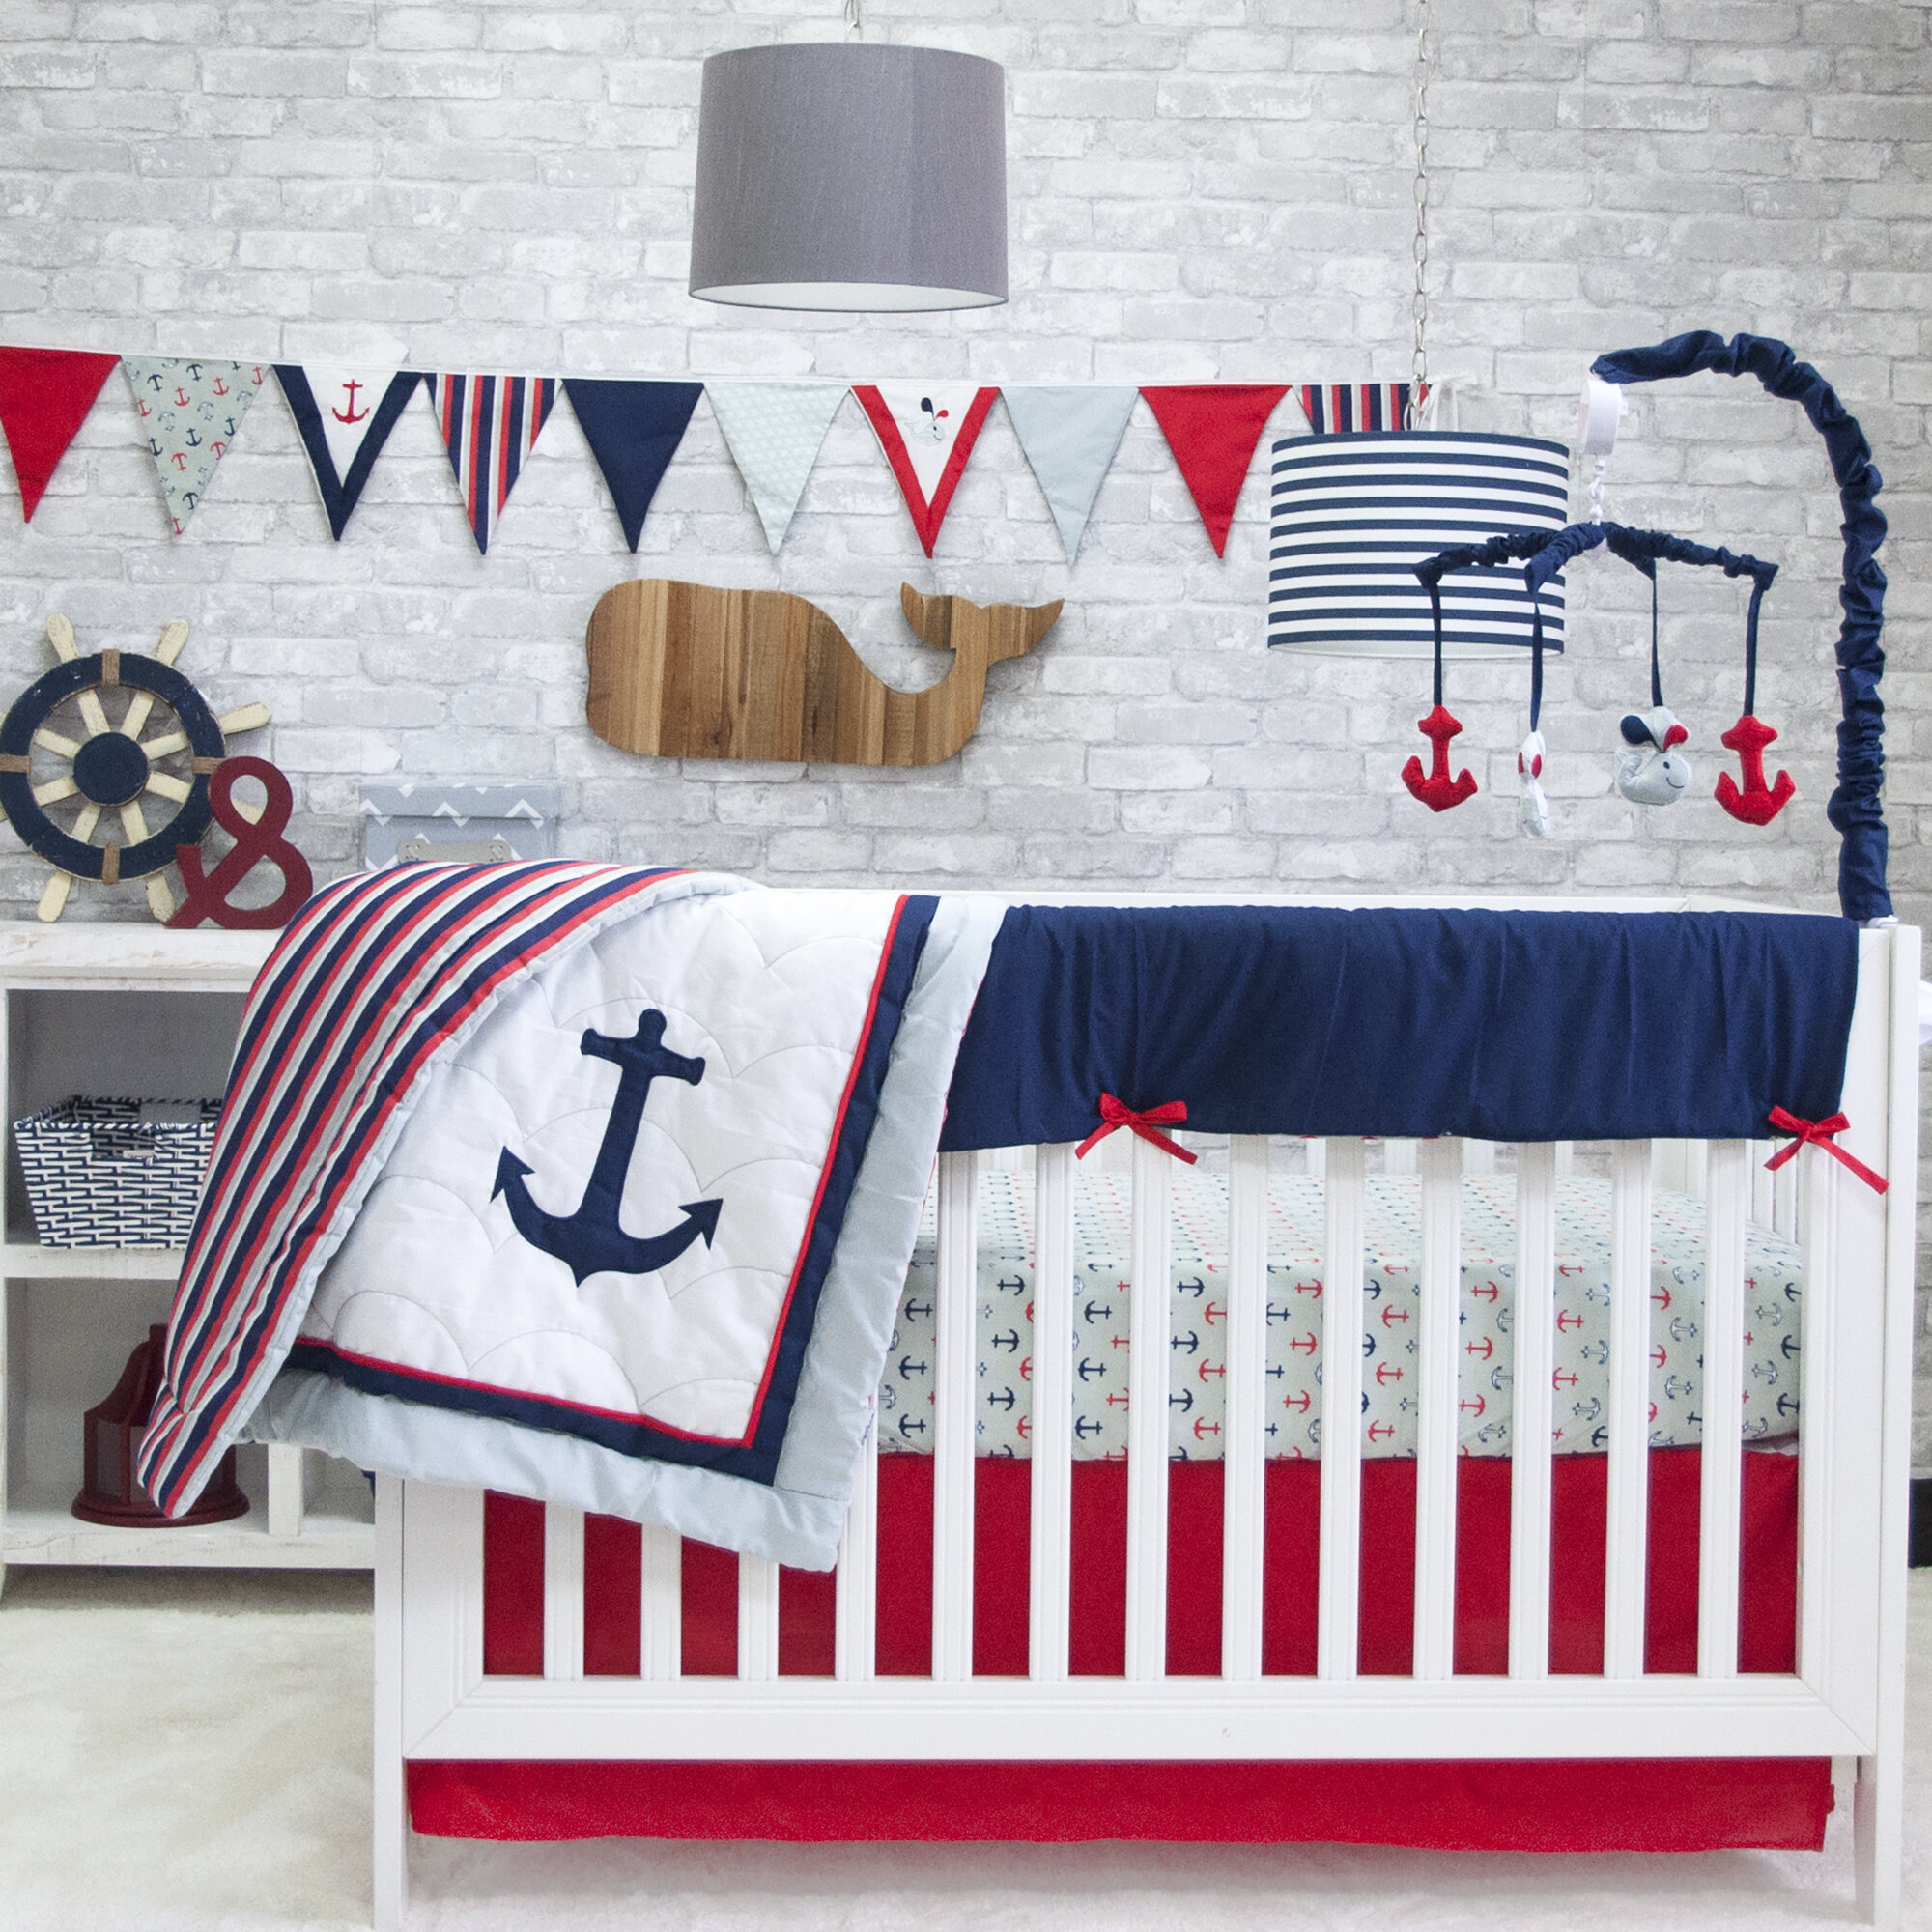 anchors made jojo cot away seaside learn nursery blue ter girl cribs sweet bedroom skirt white collections full whale bedding red how baseball baby rose boy bumper sets the infant set sailor size of prod designs crib exactly ddler a sheets we nautical